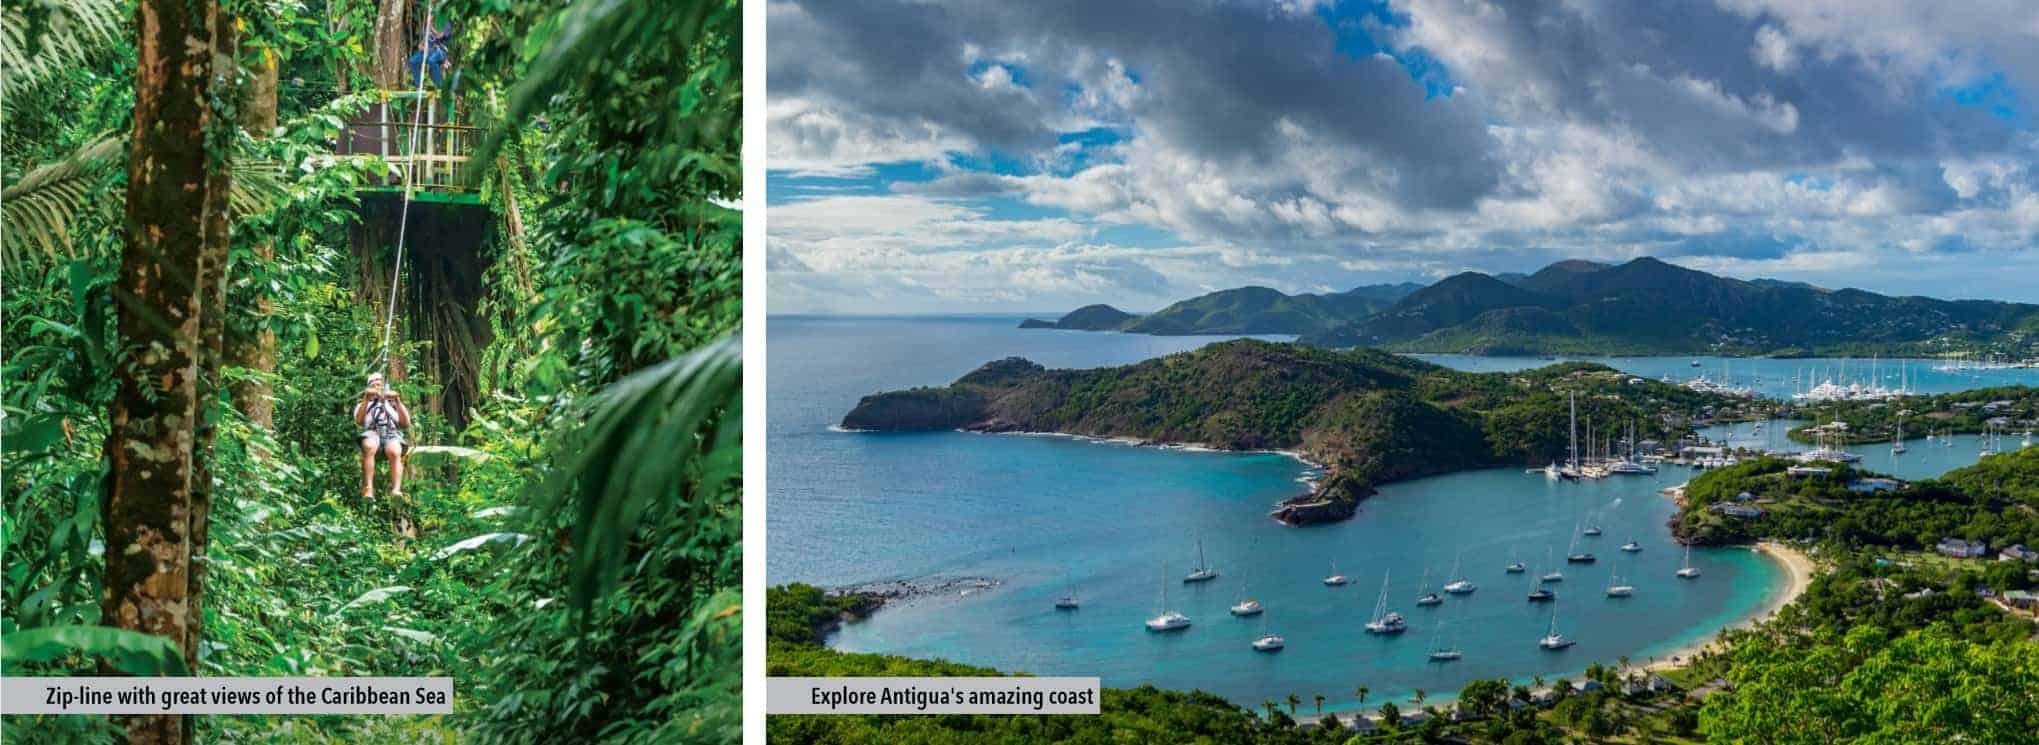 SILVERSEA: zip-line with great views of the Caribbean sea and exploring Antigua's amazing coast